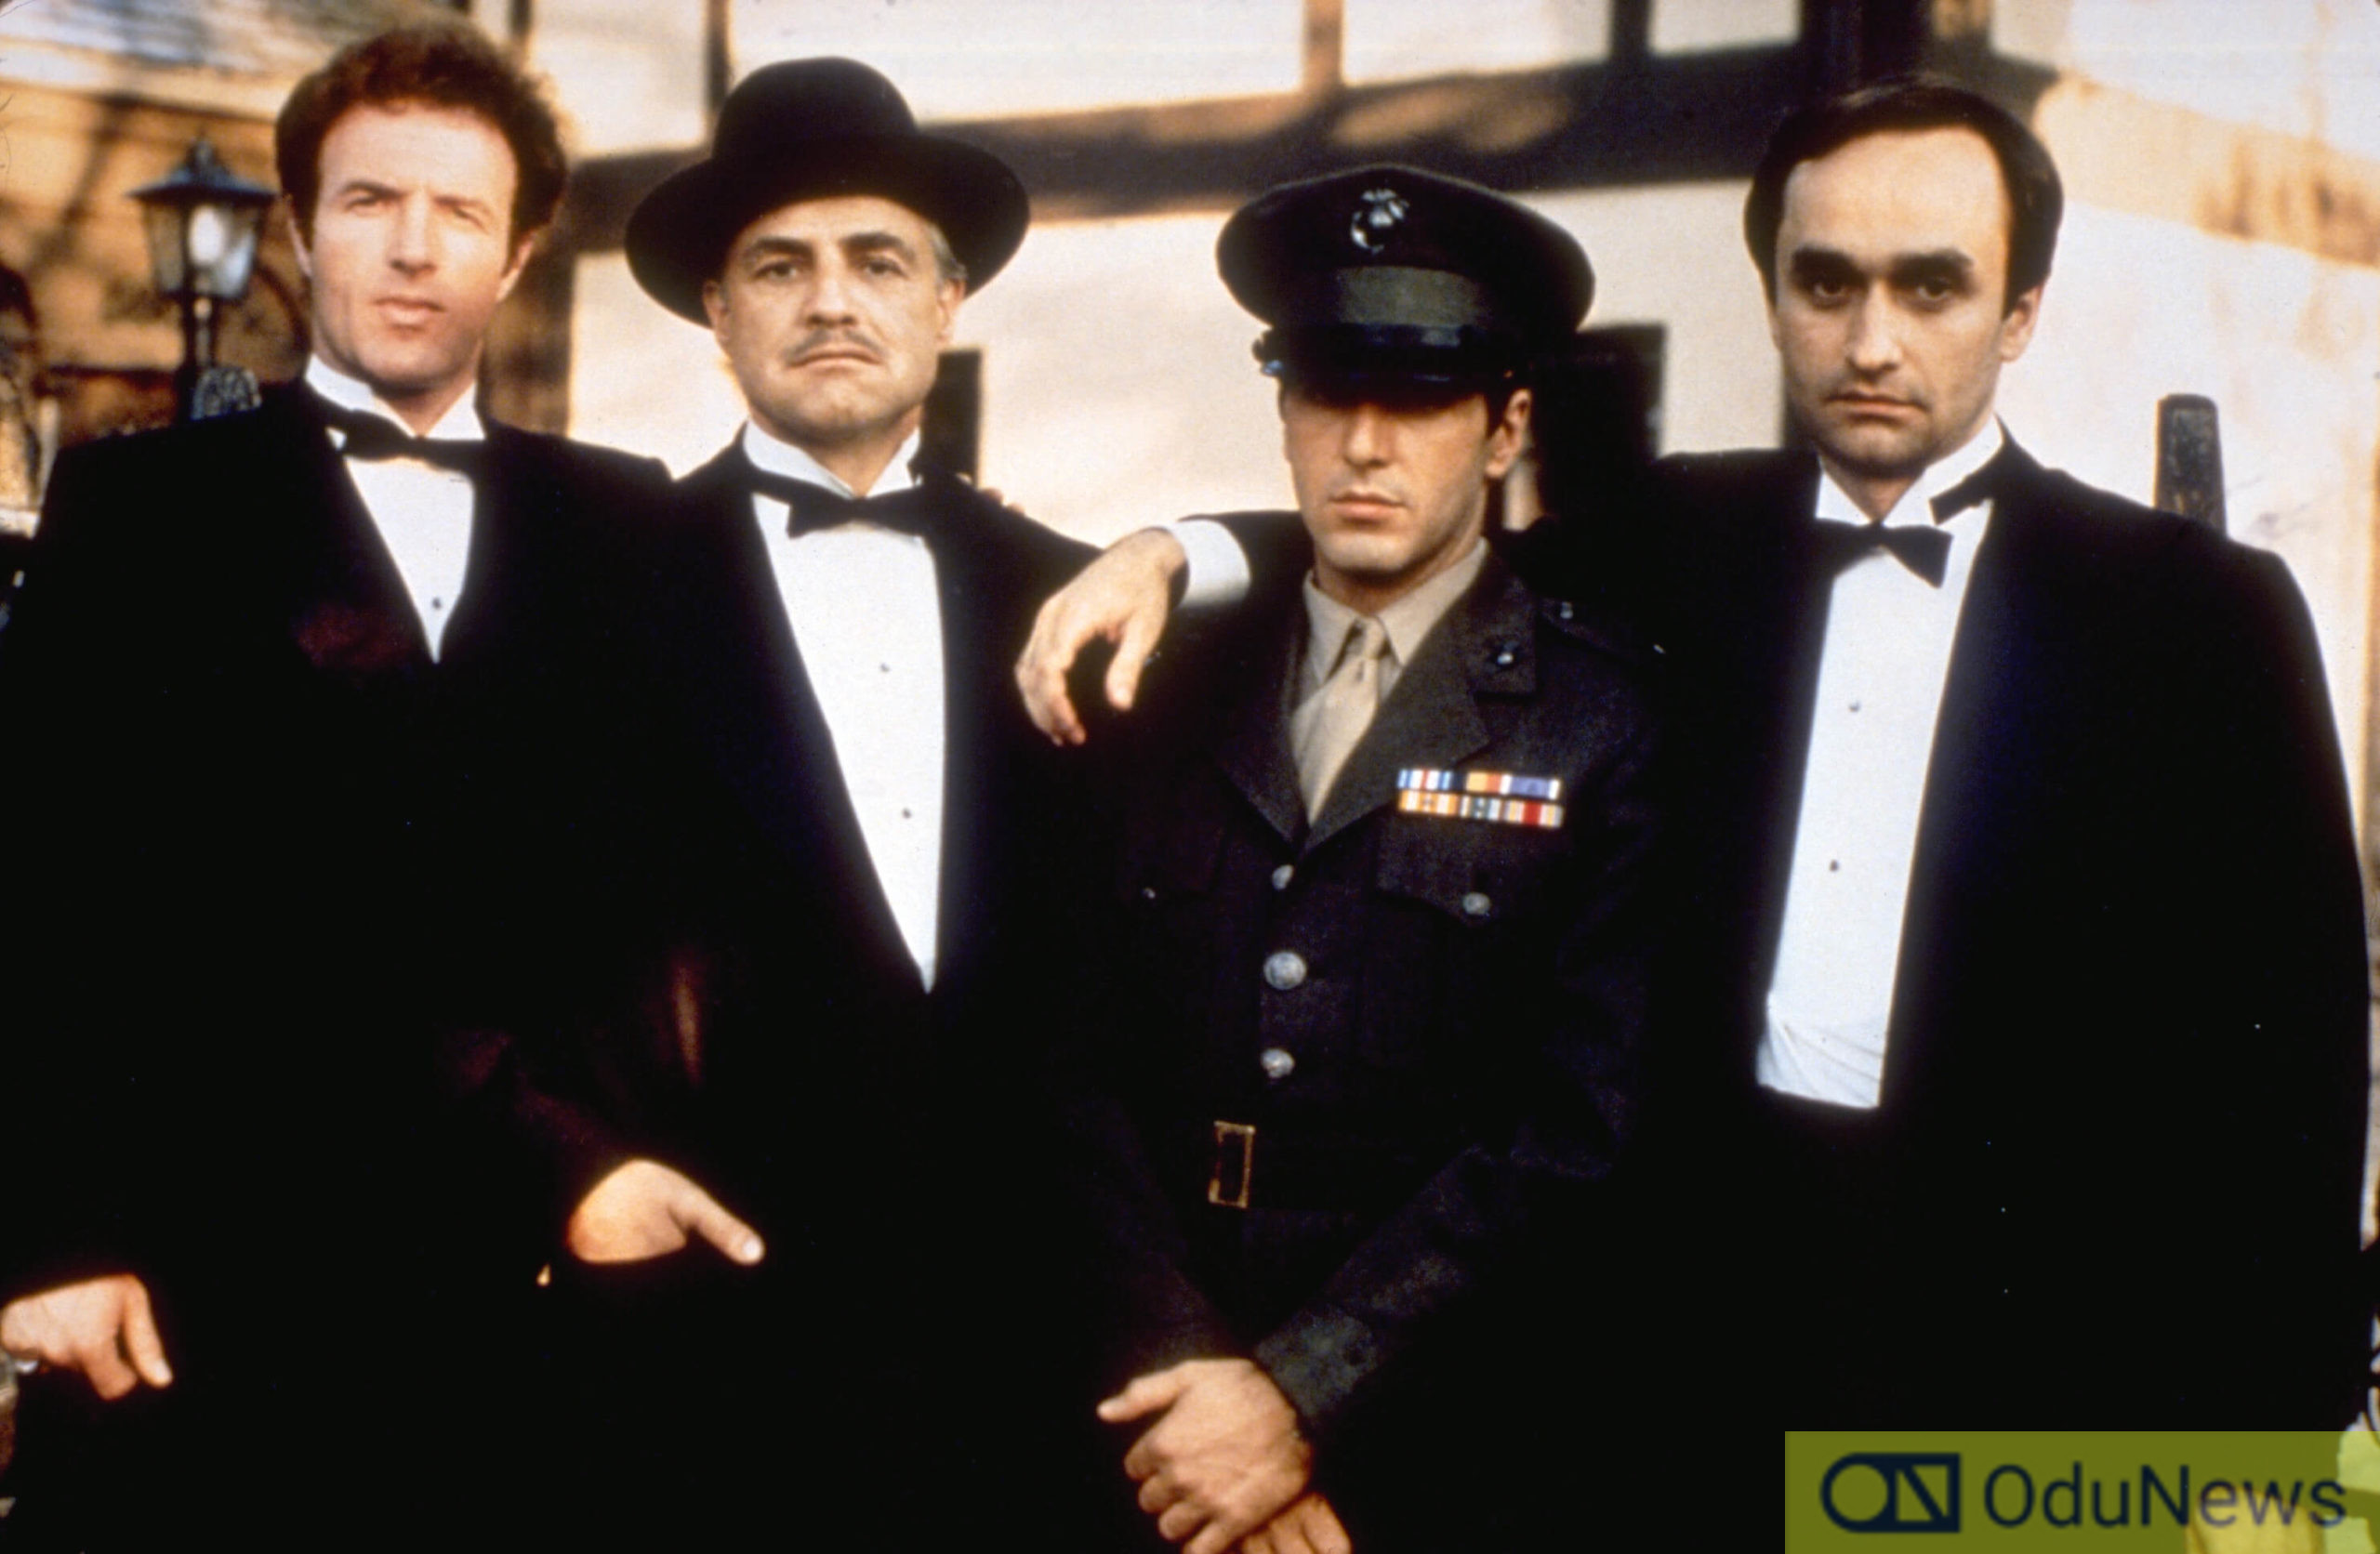 Some of the cast members of THE GODFATHER